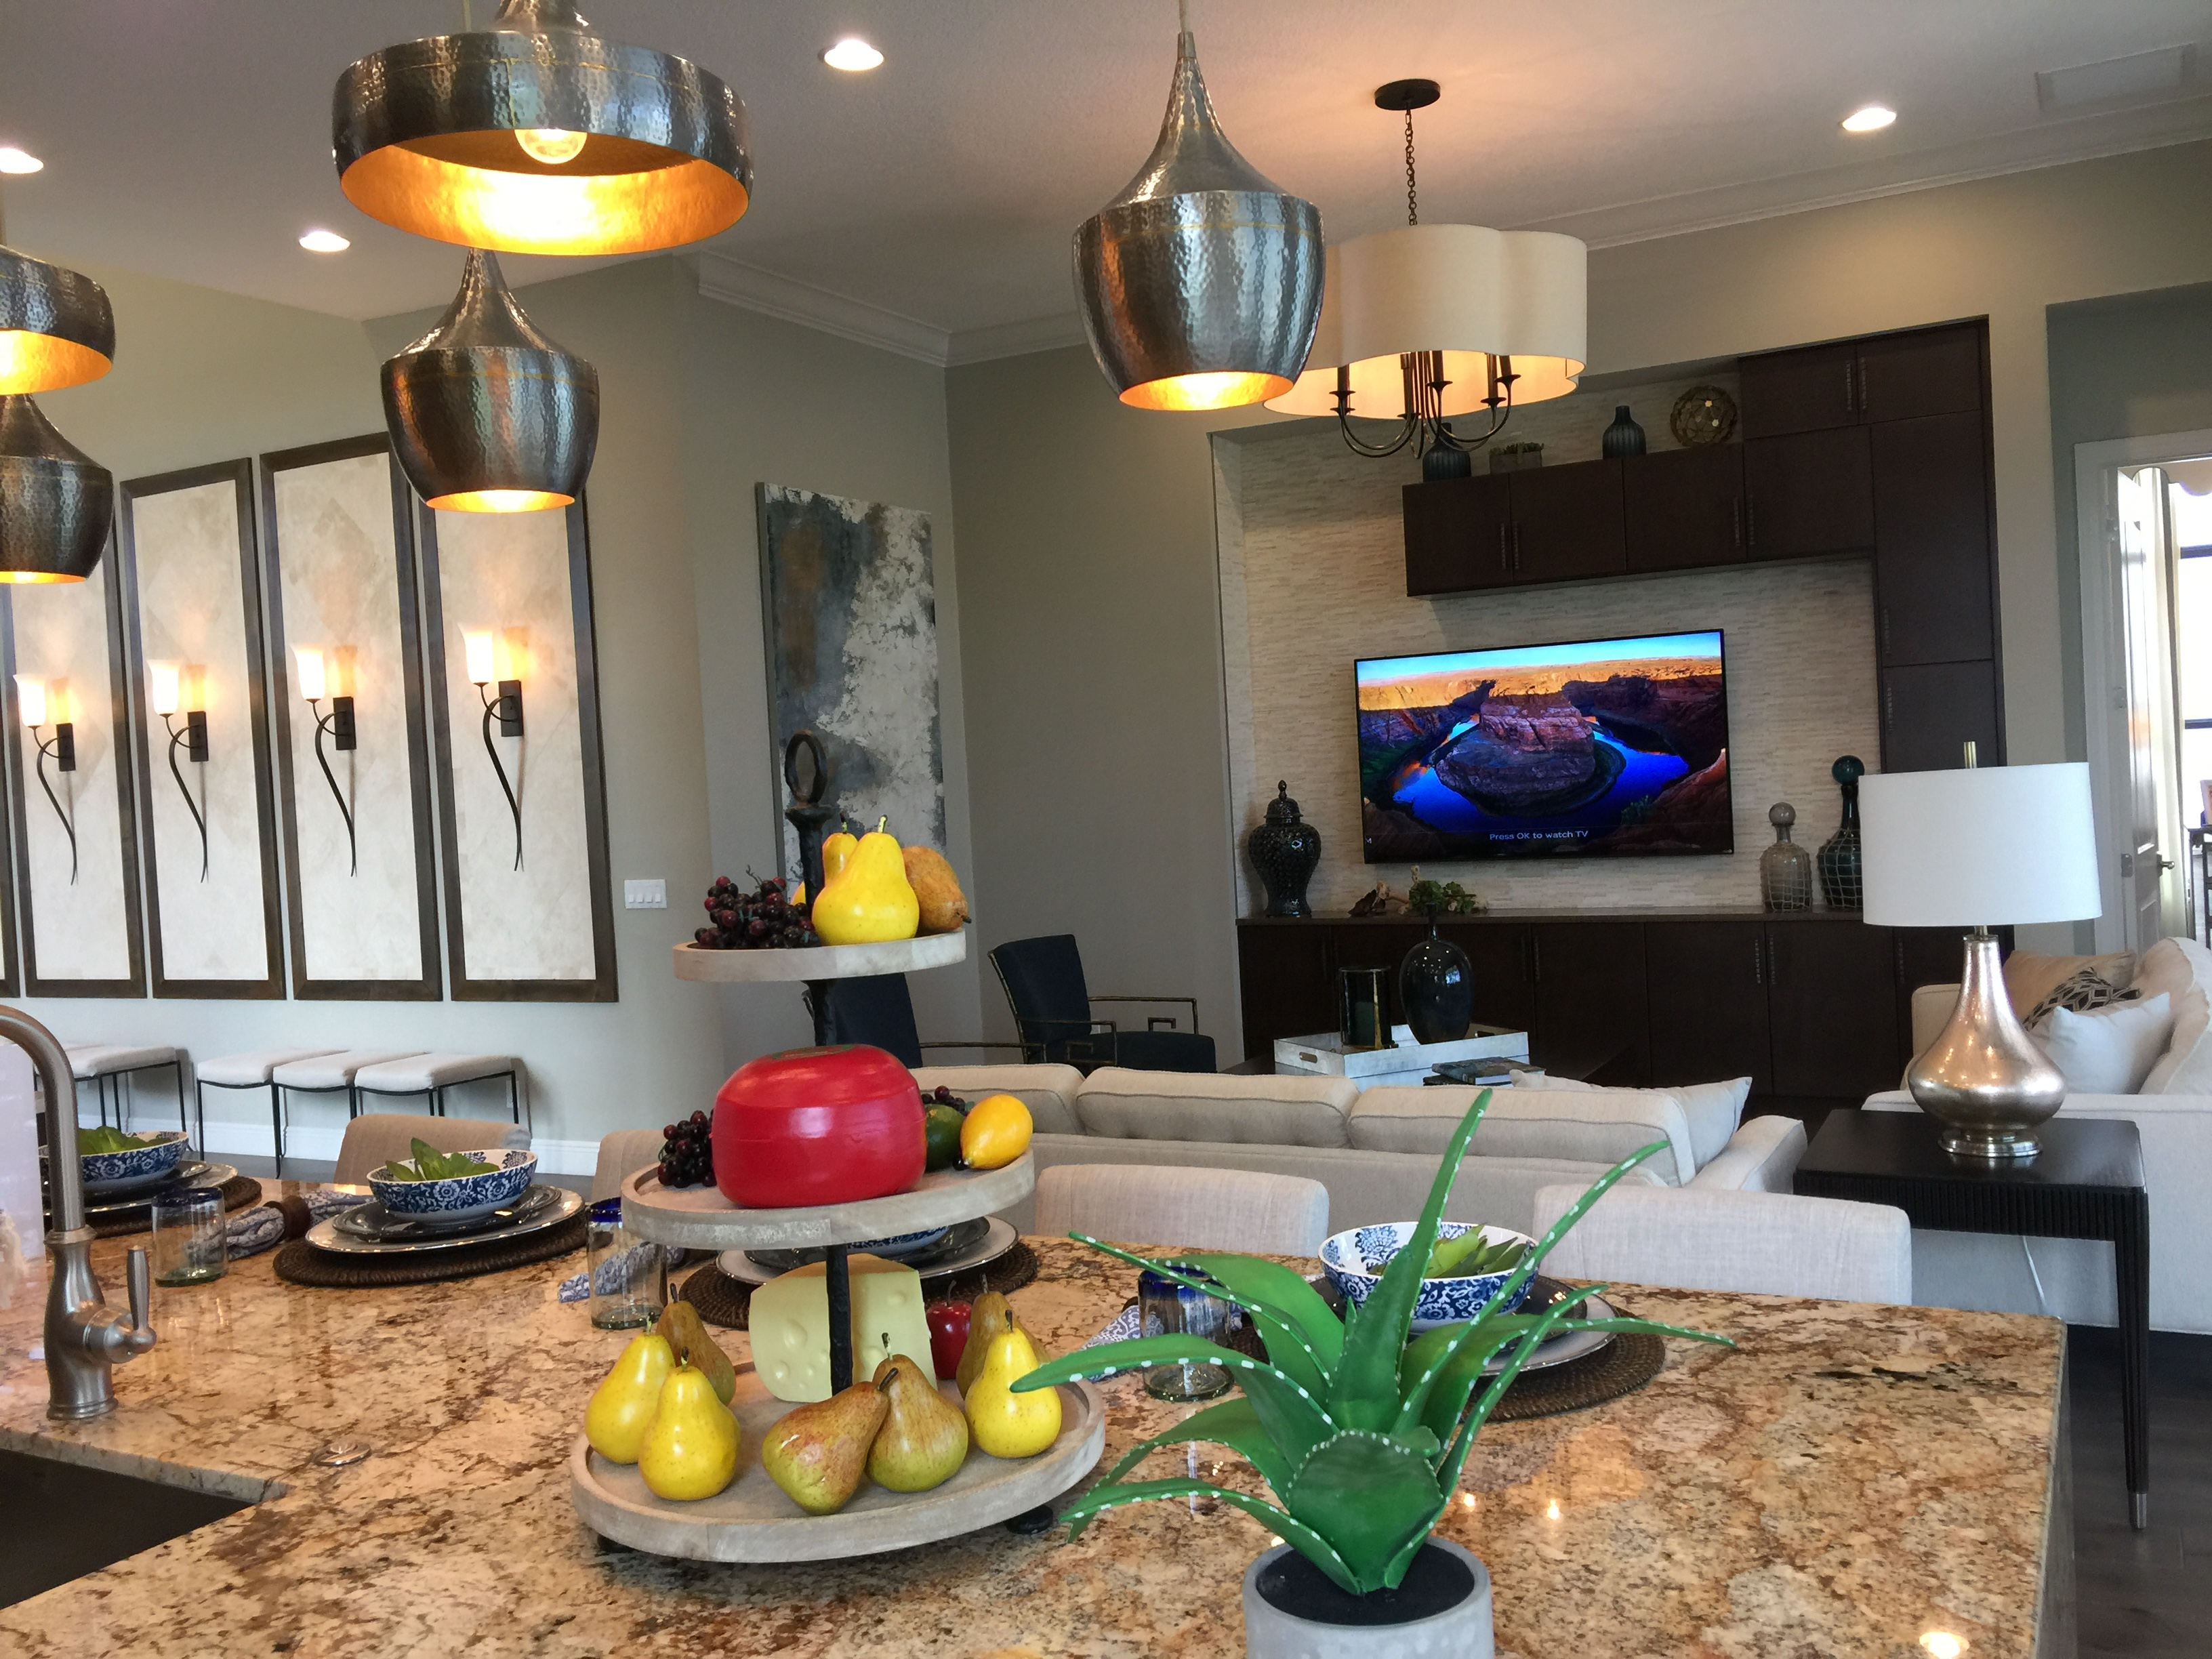 Alton kitchen model home